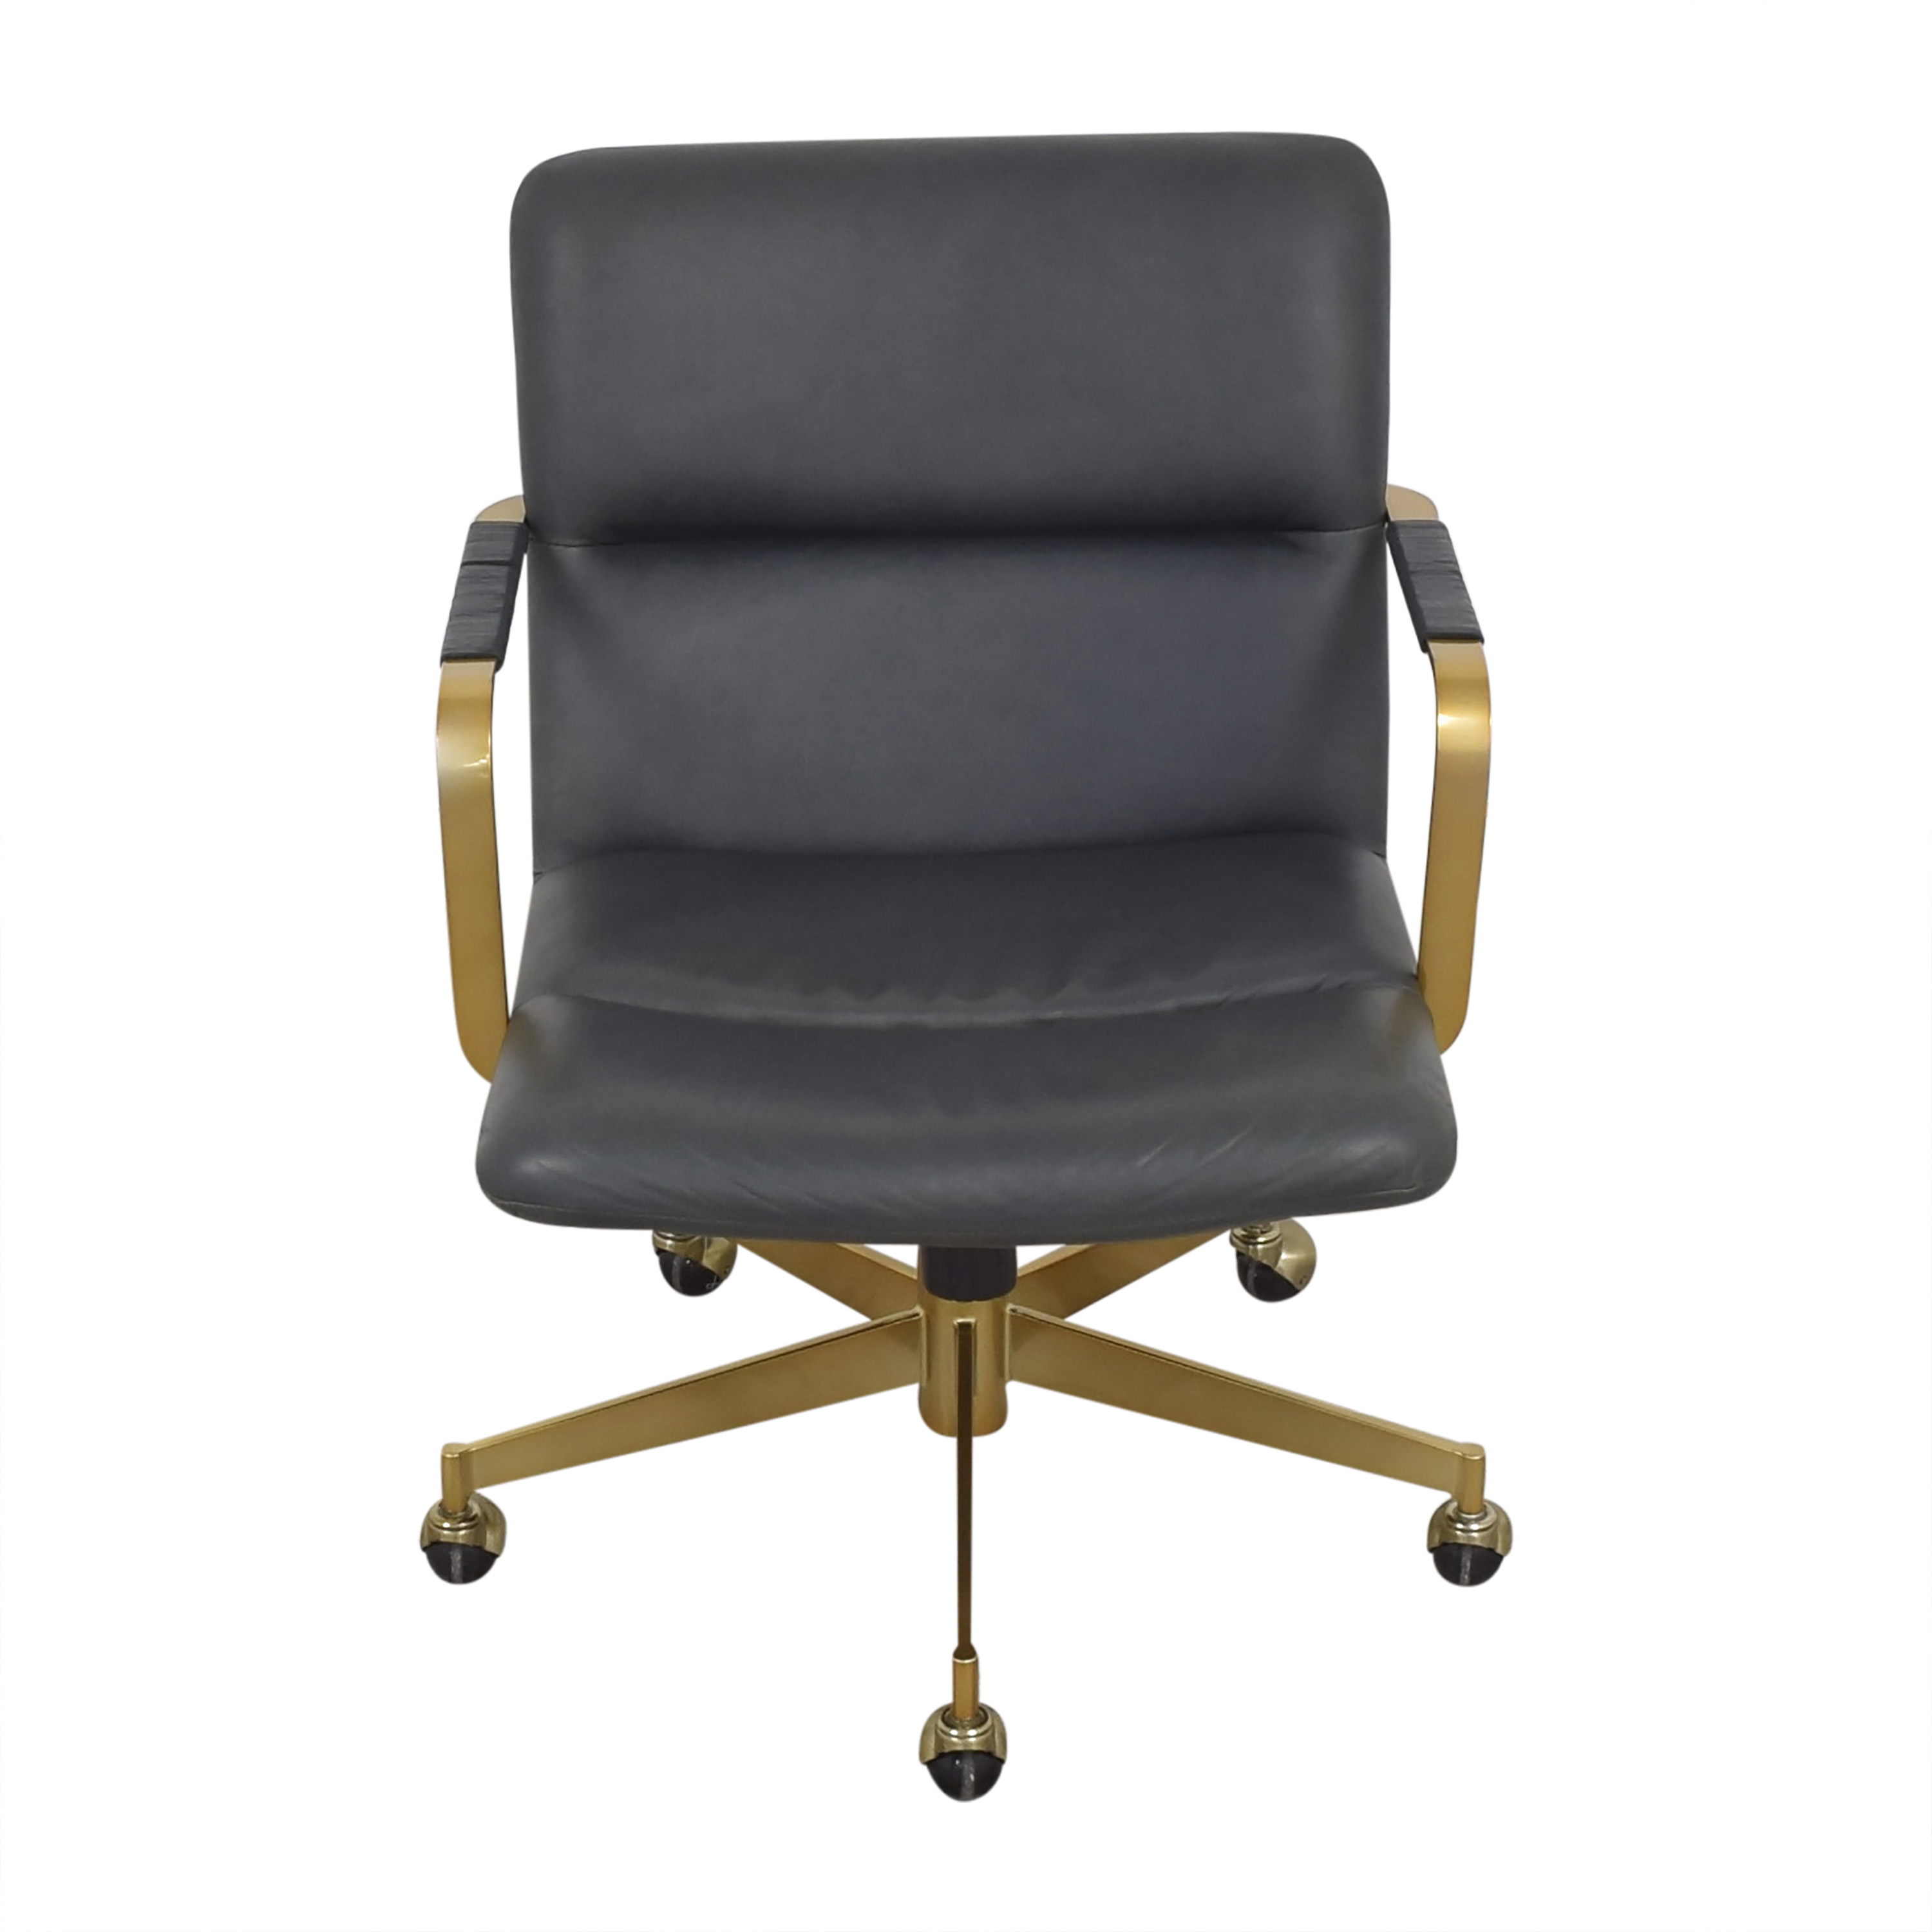 West Elm Cooper Mid-Century Office Chair / Home Office Chairs